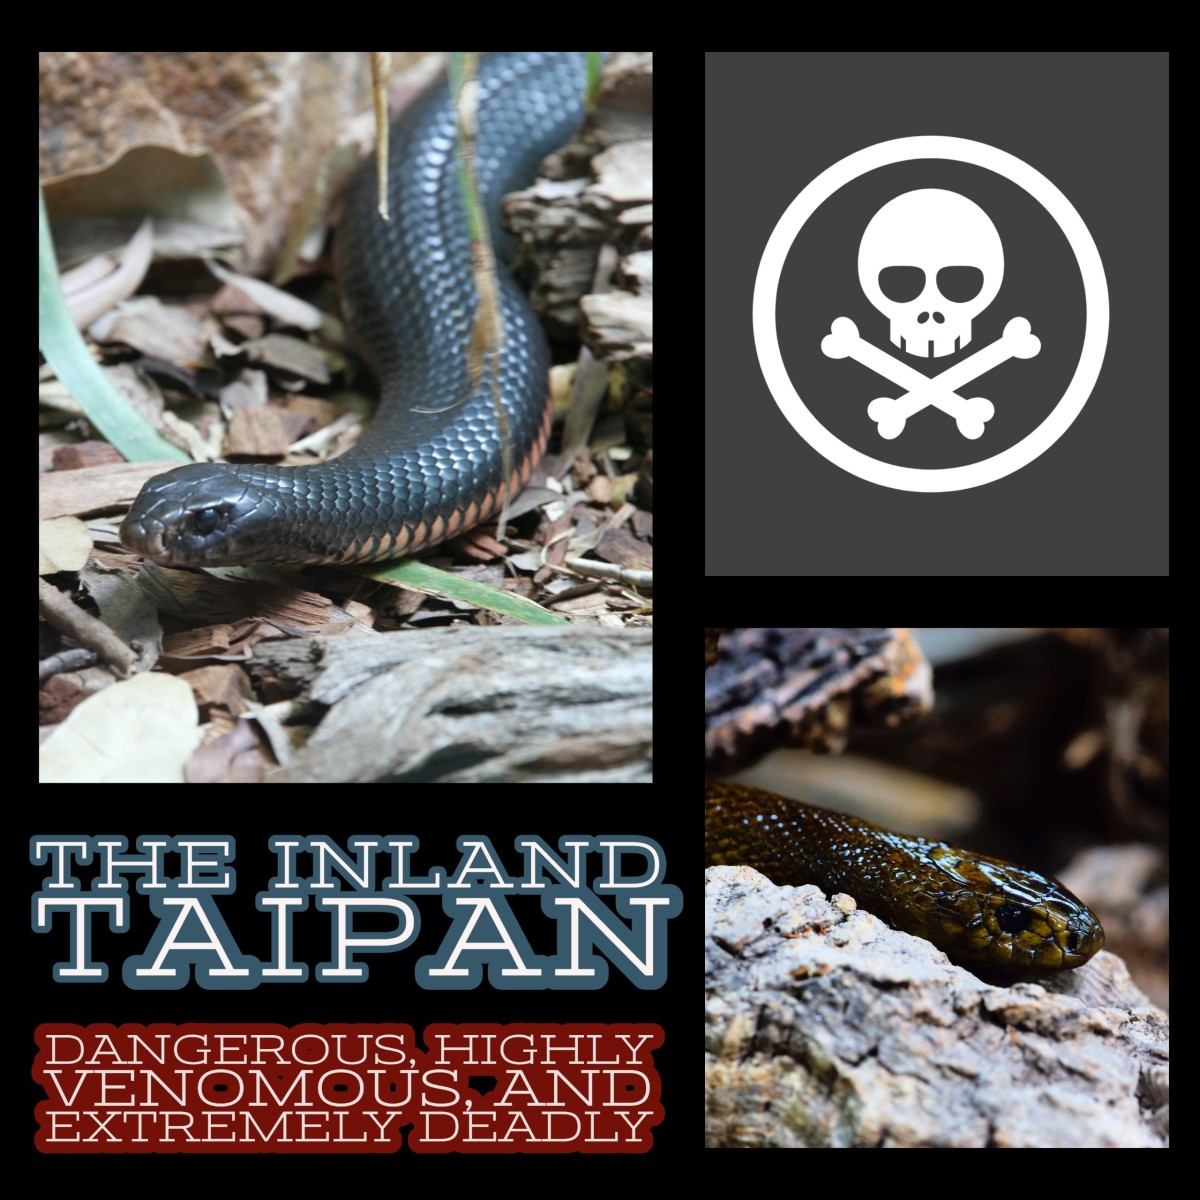 The Inland Taipan: Dangerous, Highly Venomous, and Extremely Deadly